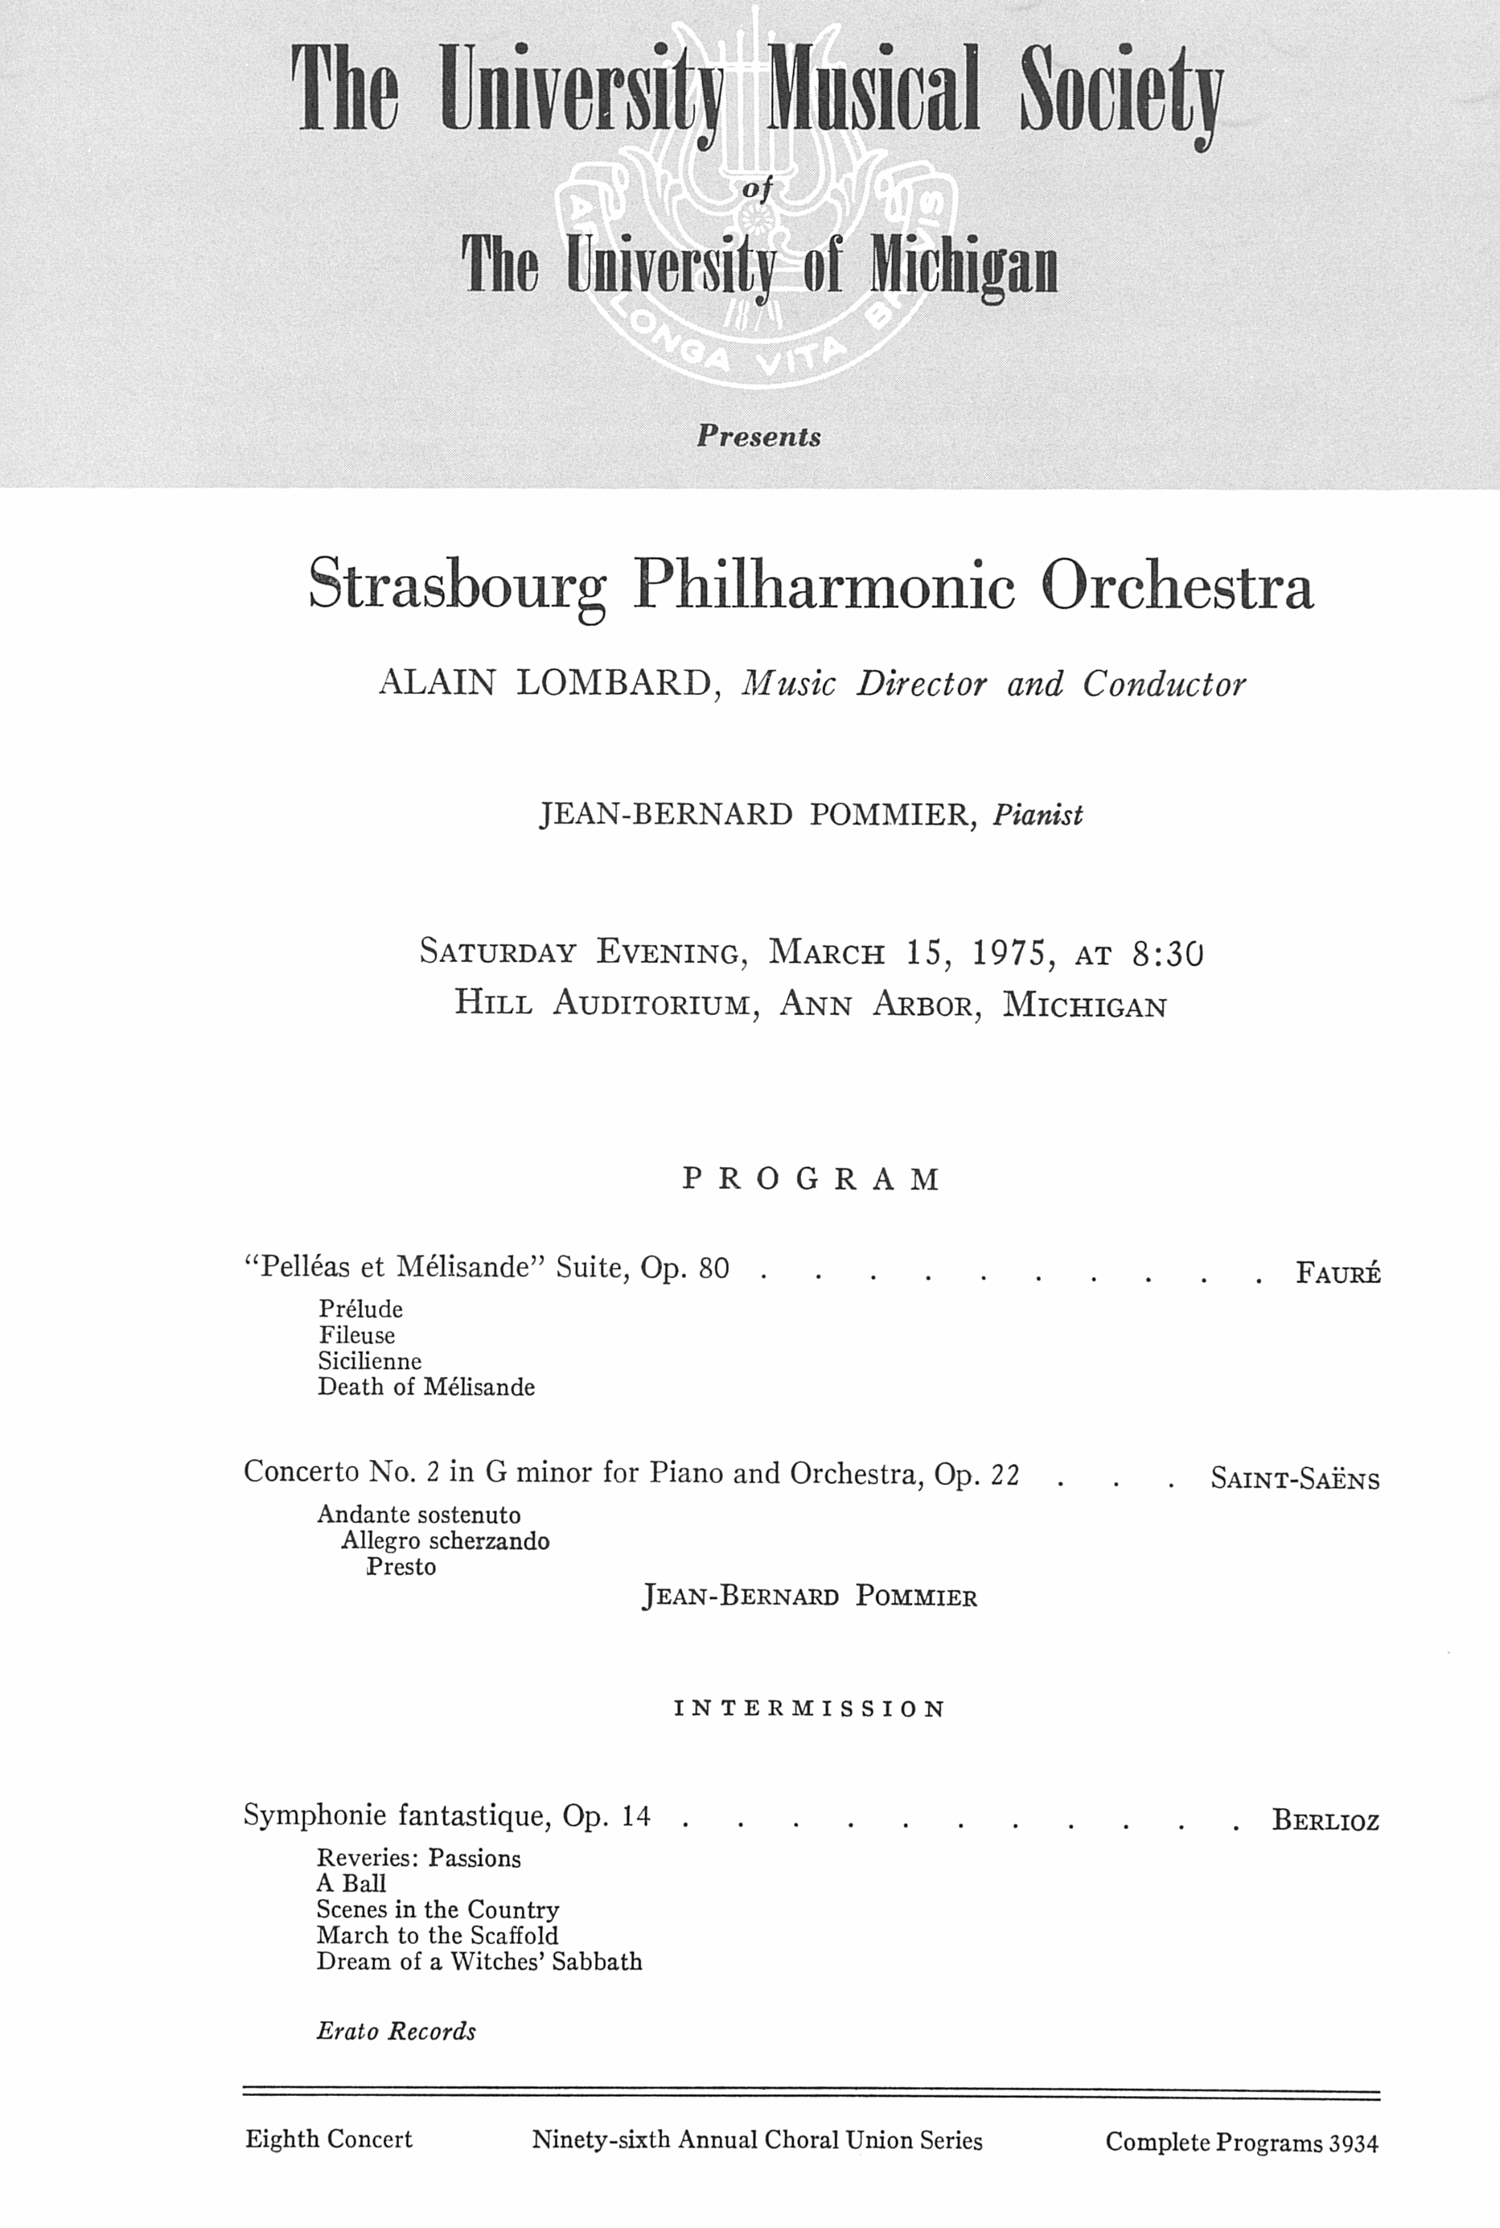 UMS Concert Program, March 15, 1975: Strasbourg Philharmonic Orchestra --  image